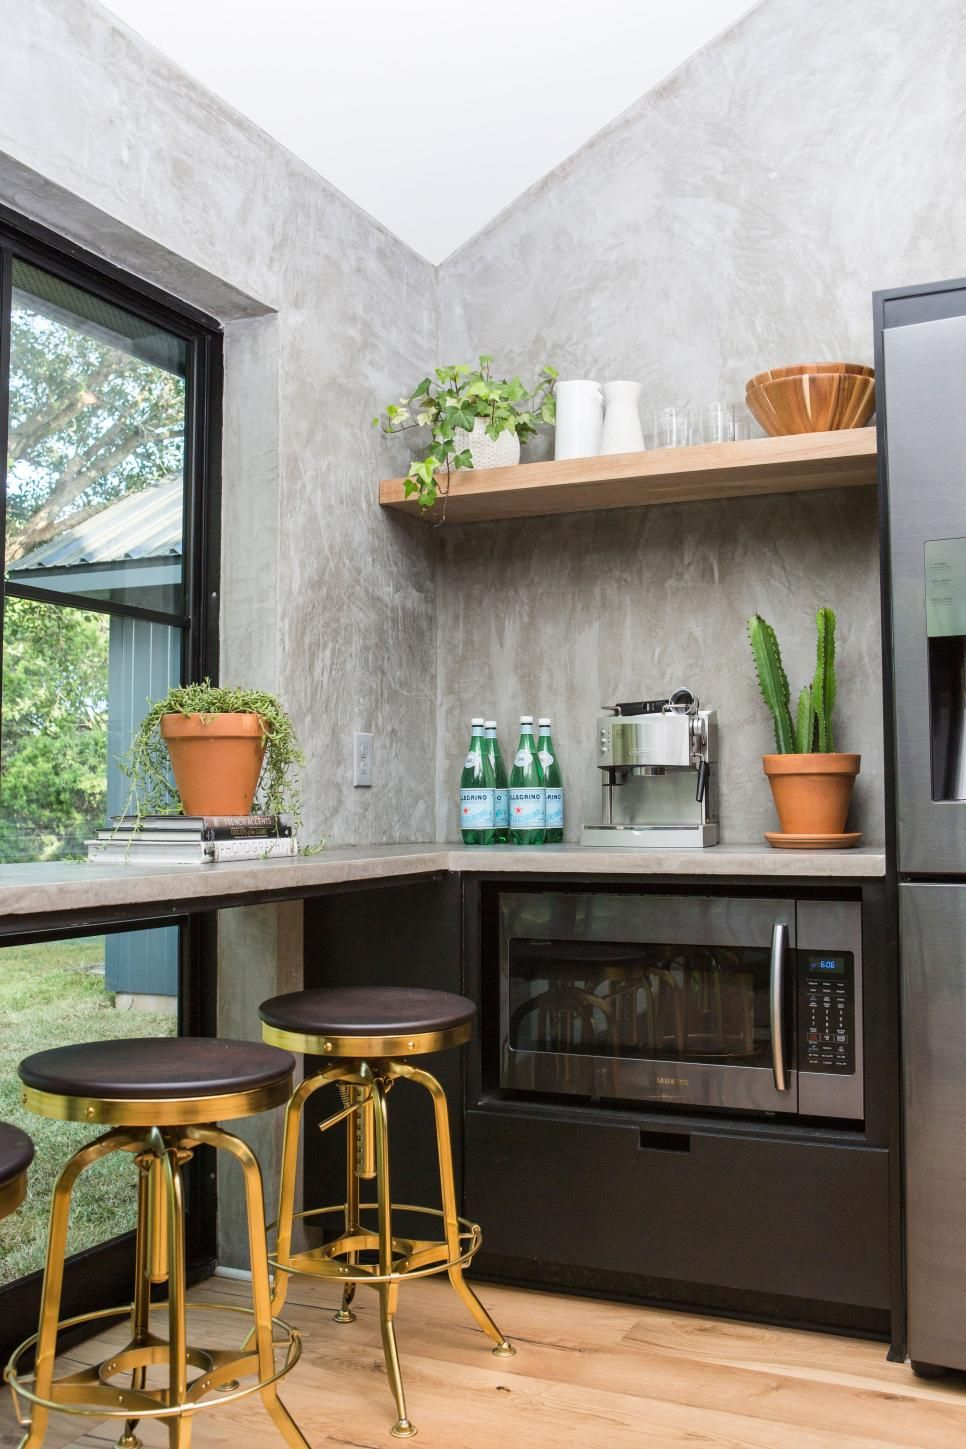 Fixer upper modern kitchen - Hgtv Fixer Upper Modern Kitchen Floor To Ceiling Windows With A Counter Counter